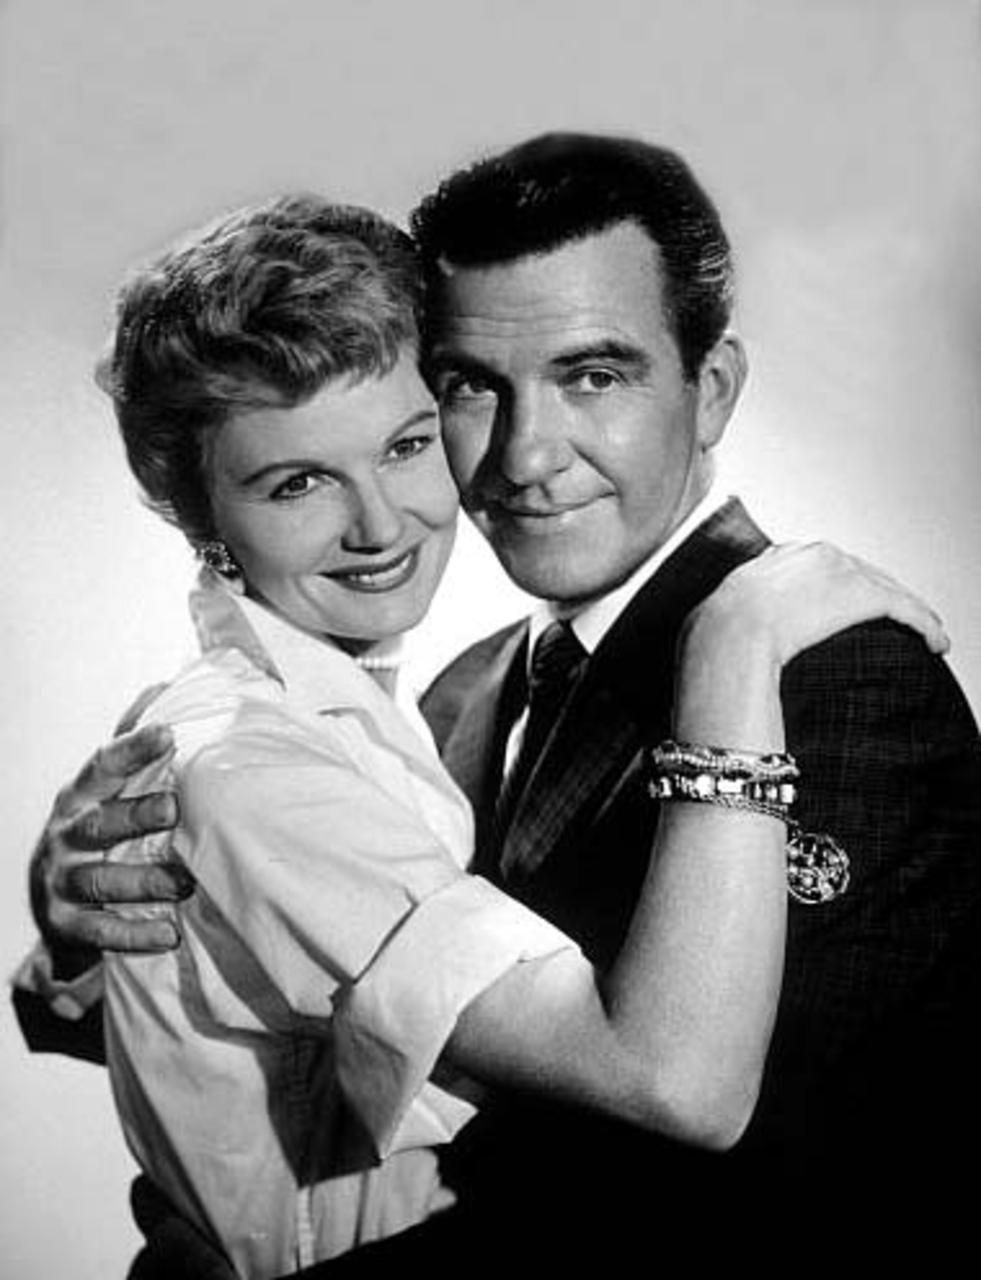 hugh beaumont kristy beaumonthugh beaumont age, hugh beaumont bio, hugh beaumont wife, hugh beaumont experience, hugh beaumont imdb, hugh beaumont height, hugh beaumont death, hugh beaumont biography, hugh beaumont movies, hugh beaumont mst3k, hugh beaumont michael shayne, hugh beaumont family, hugh beaumont images, hugh beaumont kristy beaumont, hugh beaumont son, hugh beaumont photos, hugh beaumont autograph, hugh beaumont grave site, hugh beaumont military service, hugh beaumont interview